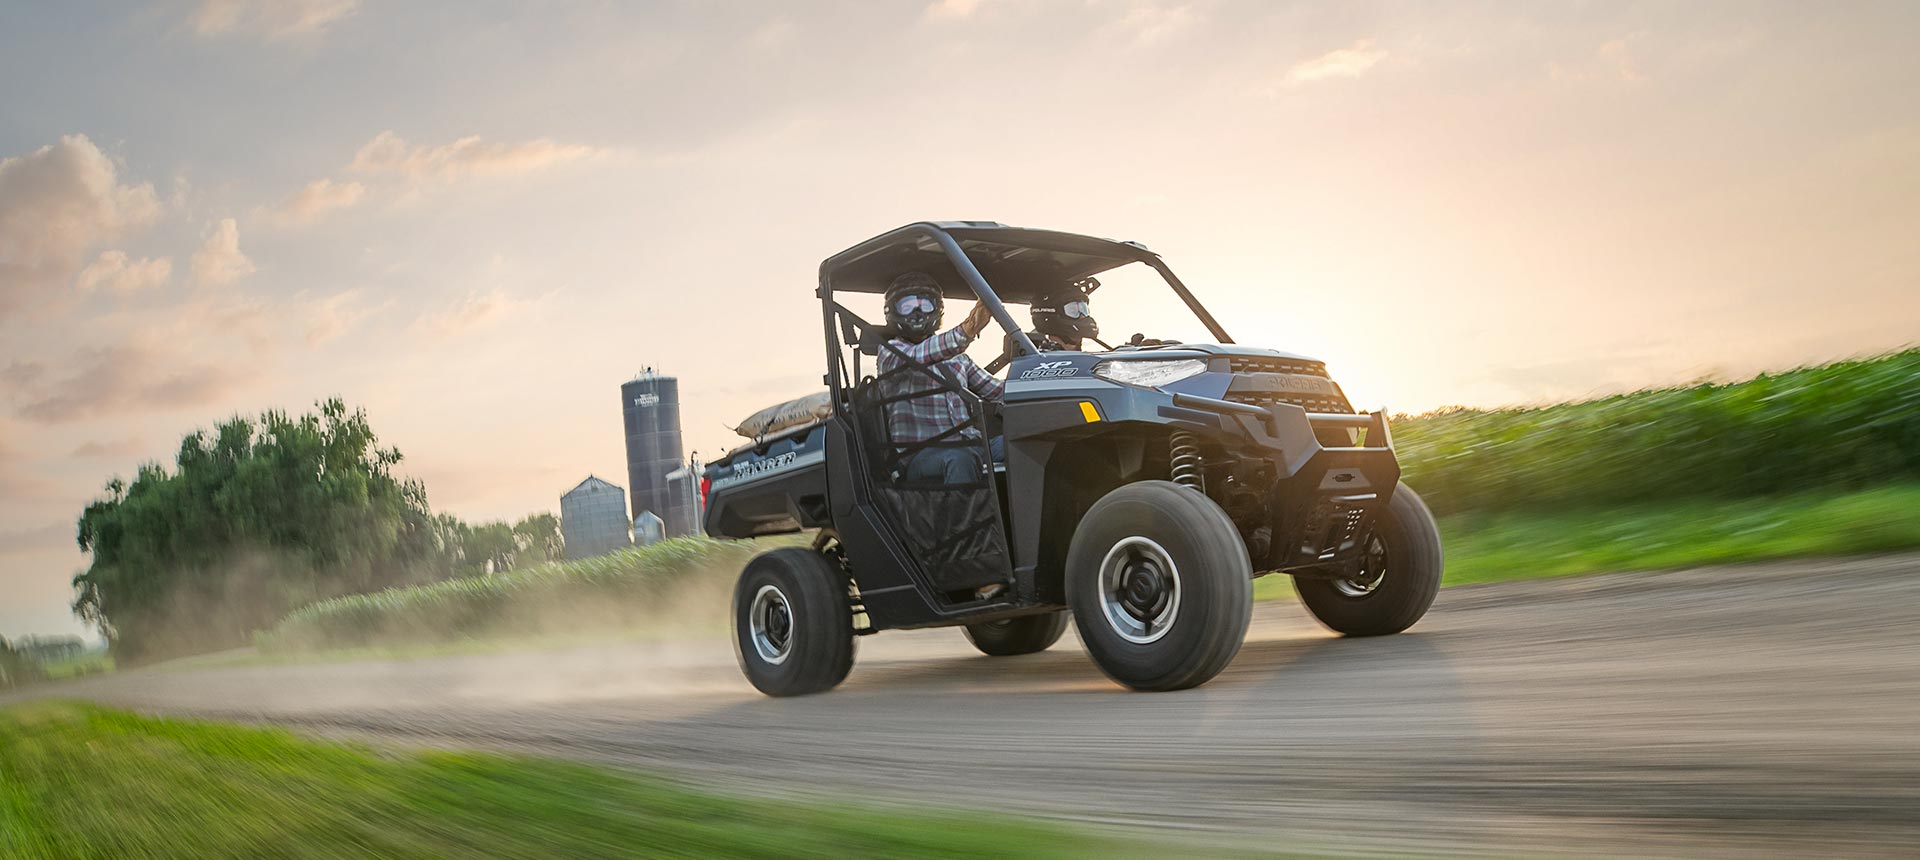 2019 Polaris Ranger XP 1000 EPS in Redding, California - Photo 11